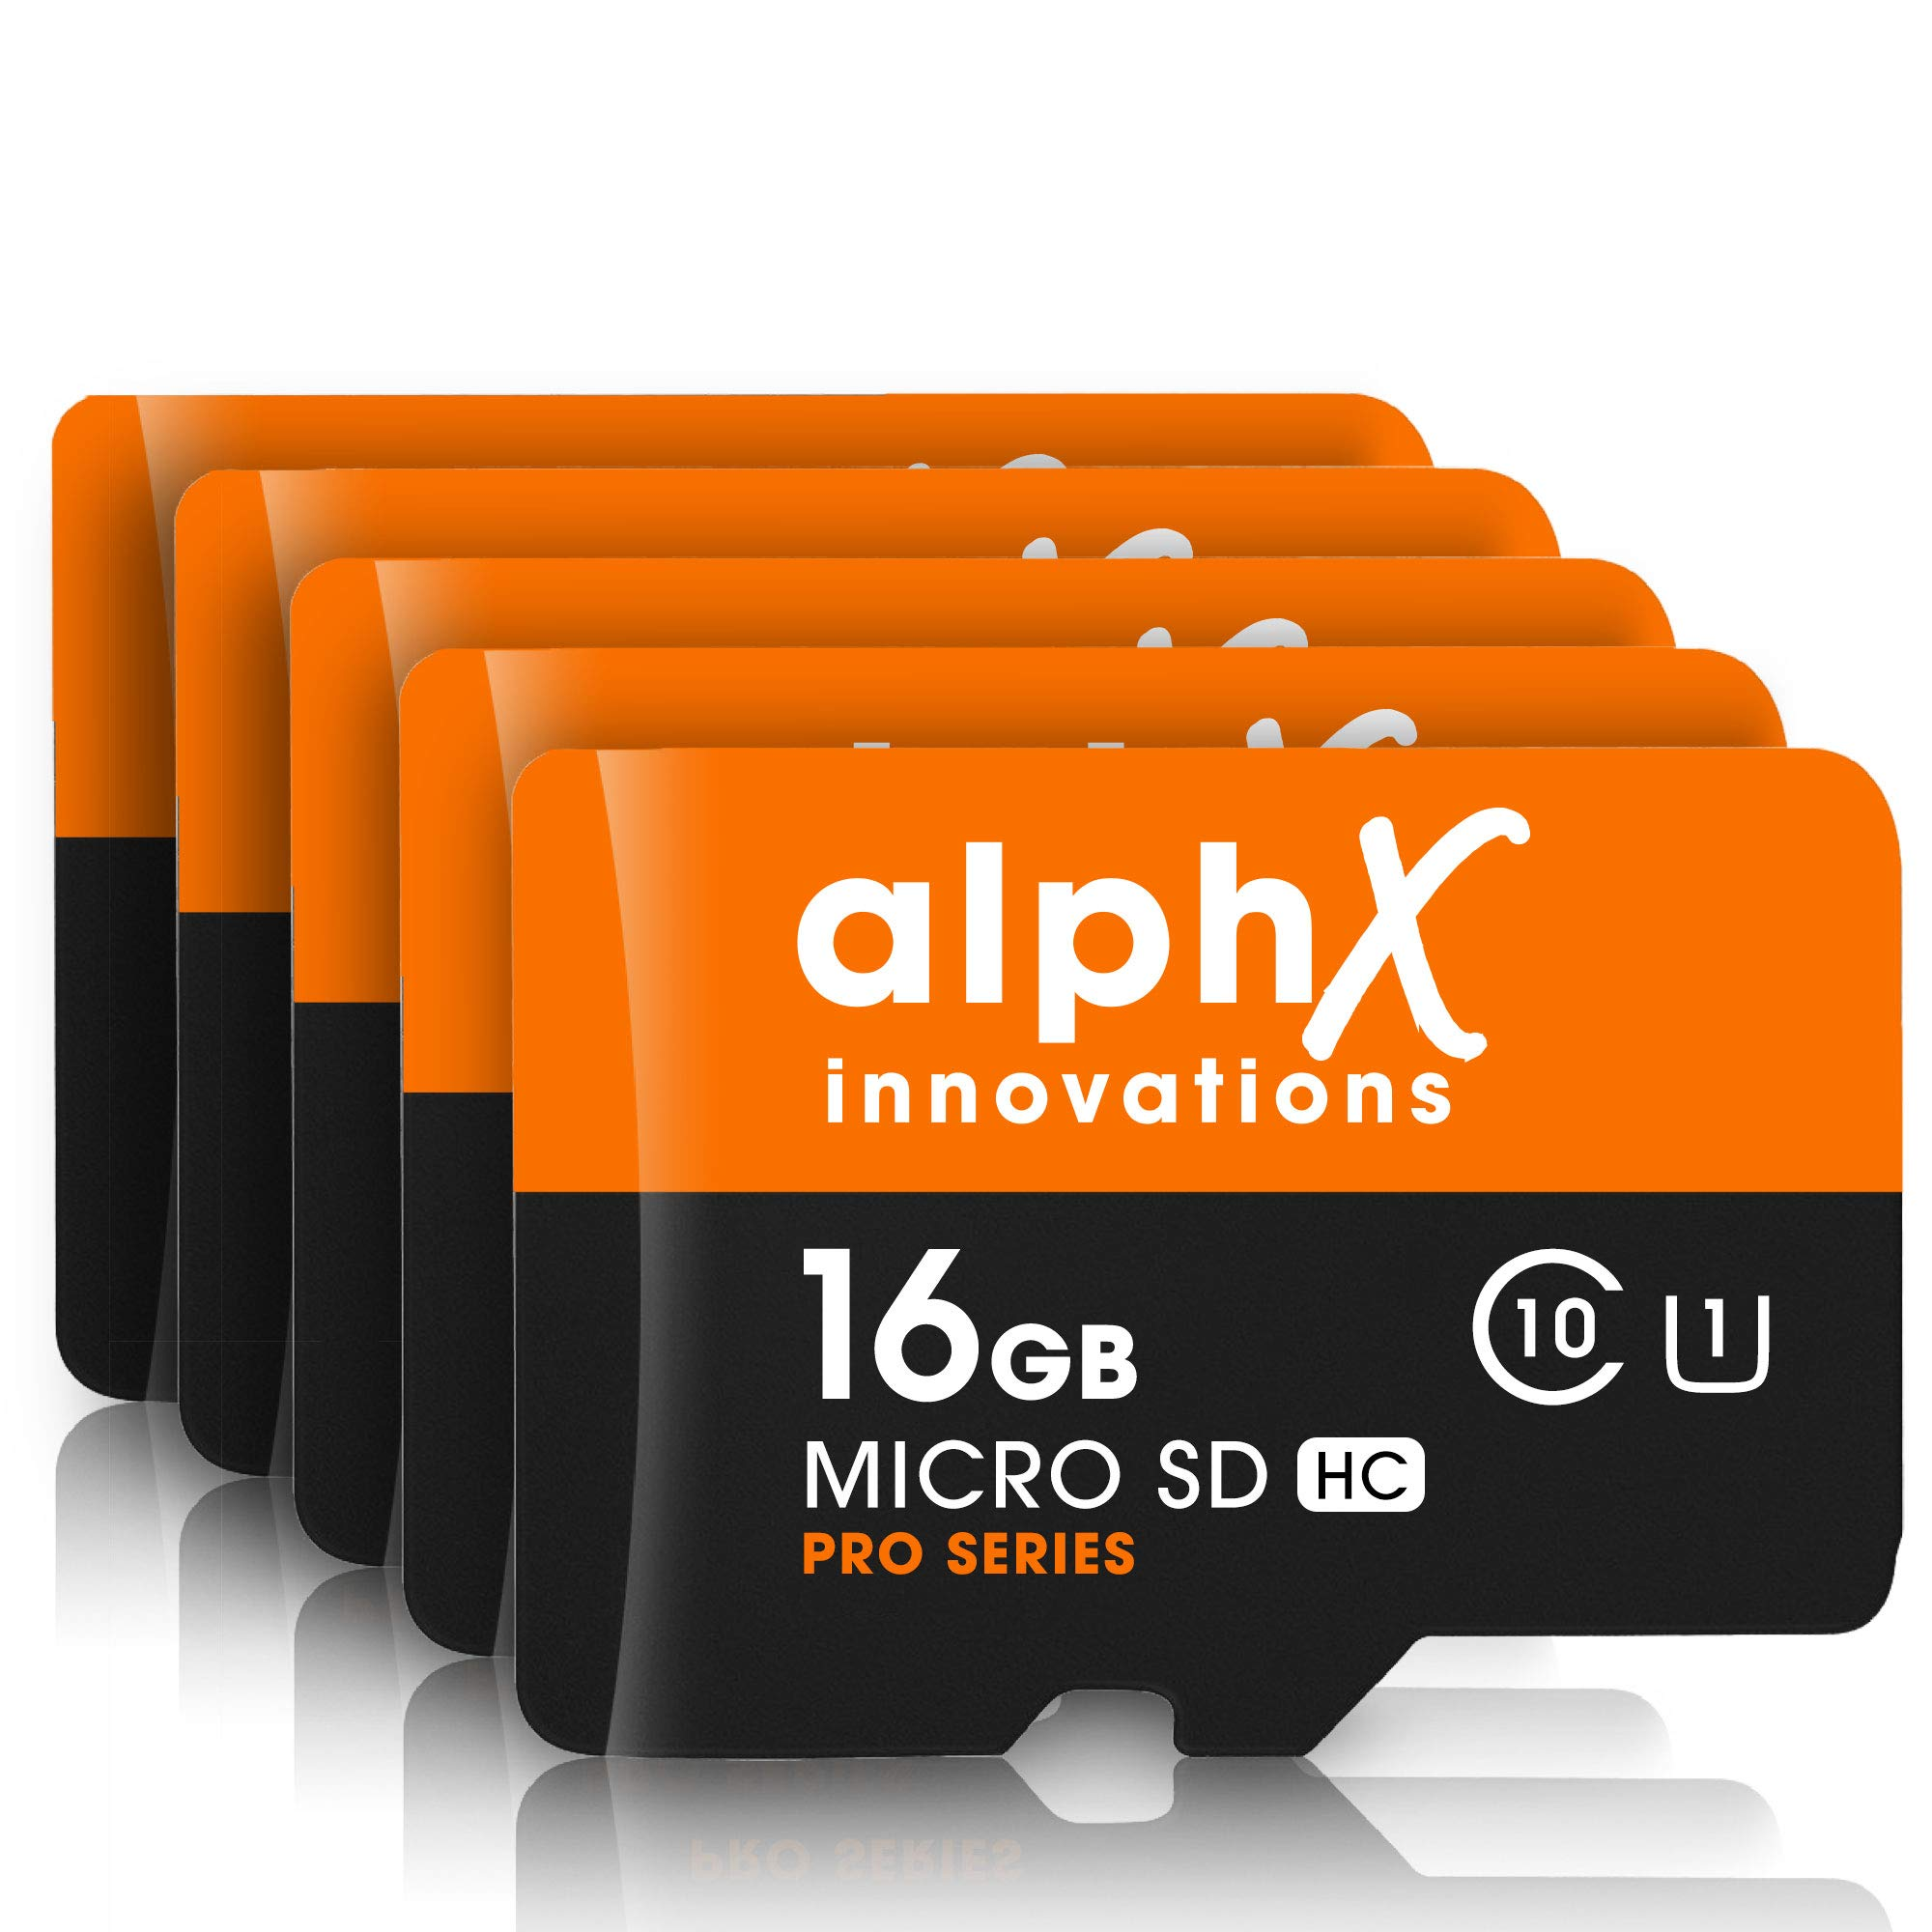 7 Piece Bundle - AlphX 16gb [5 pack] Micro SD High Speed Class 10 Memory Cards for Samsung Galaxy S9, S9+, S8, Note 8, S7, S5, S4 with Bonus Adapter and Sandisk Micro SD Card Reader